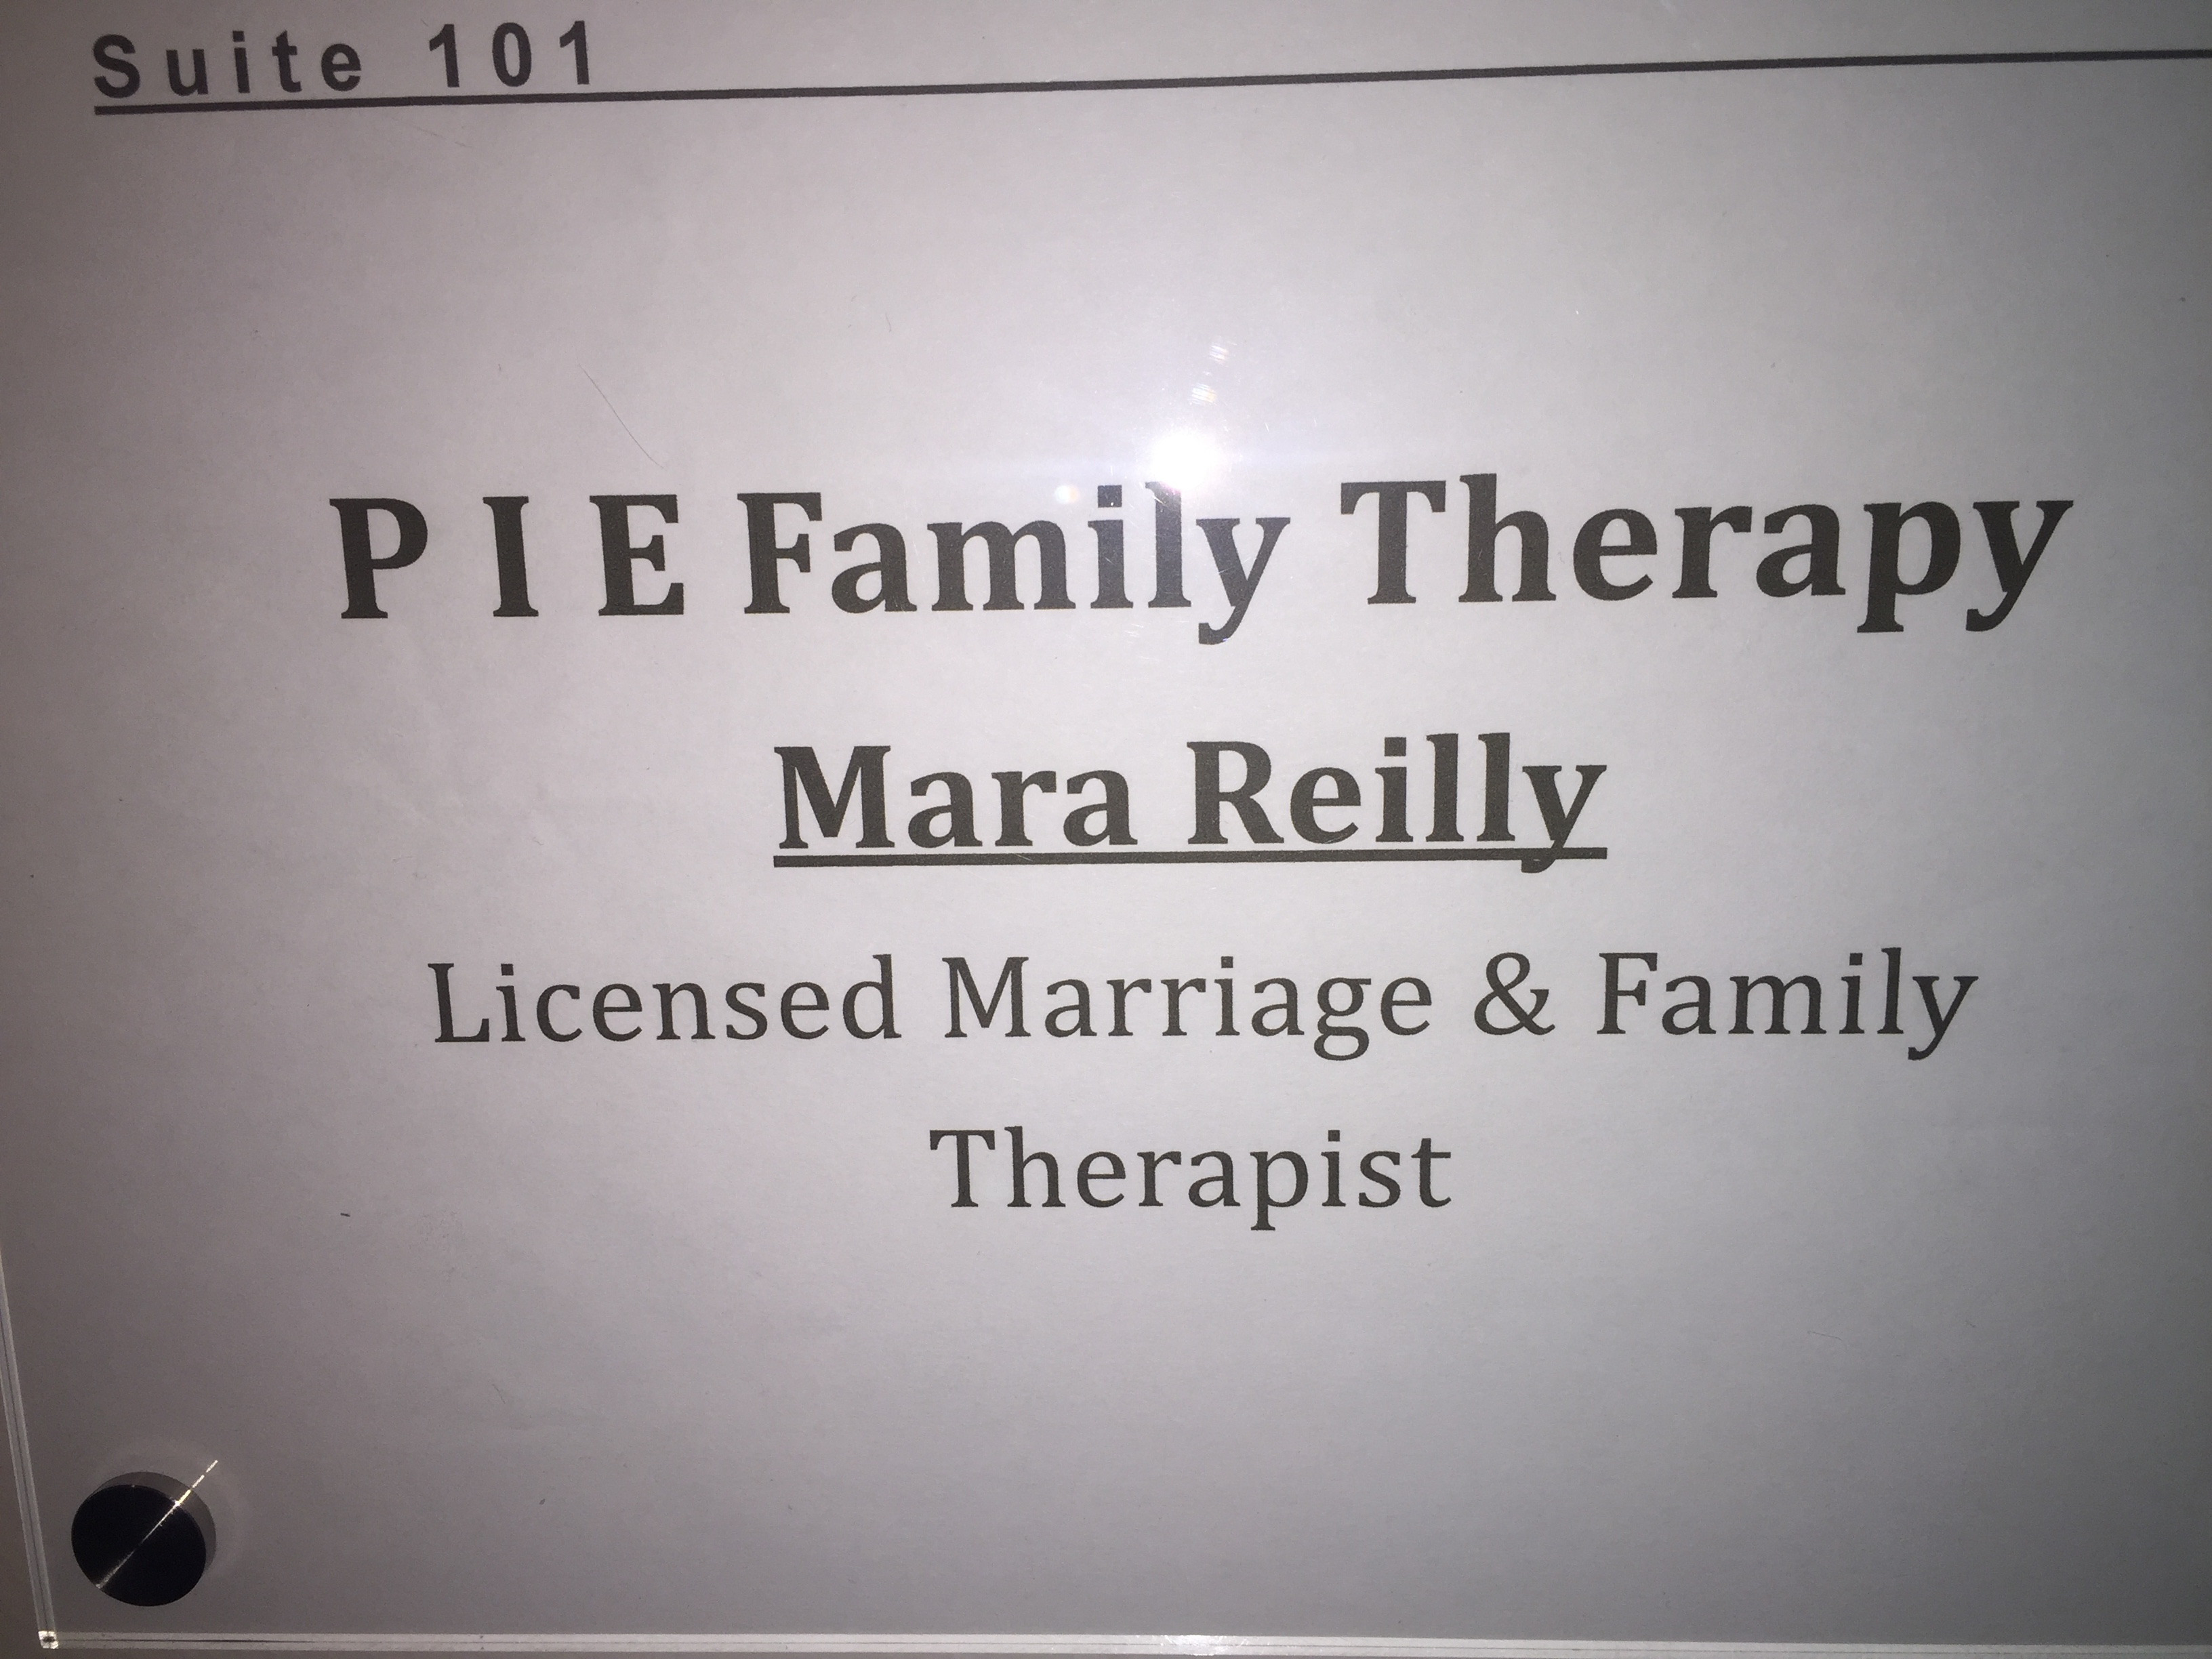 Mara Reilly, LMFT, Marriage & Family Therapist